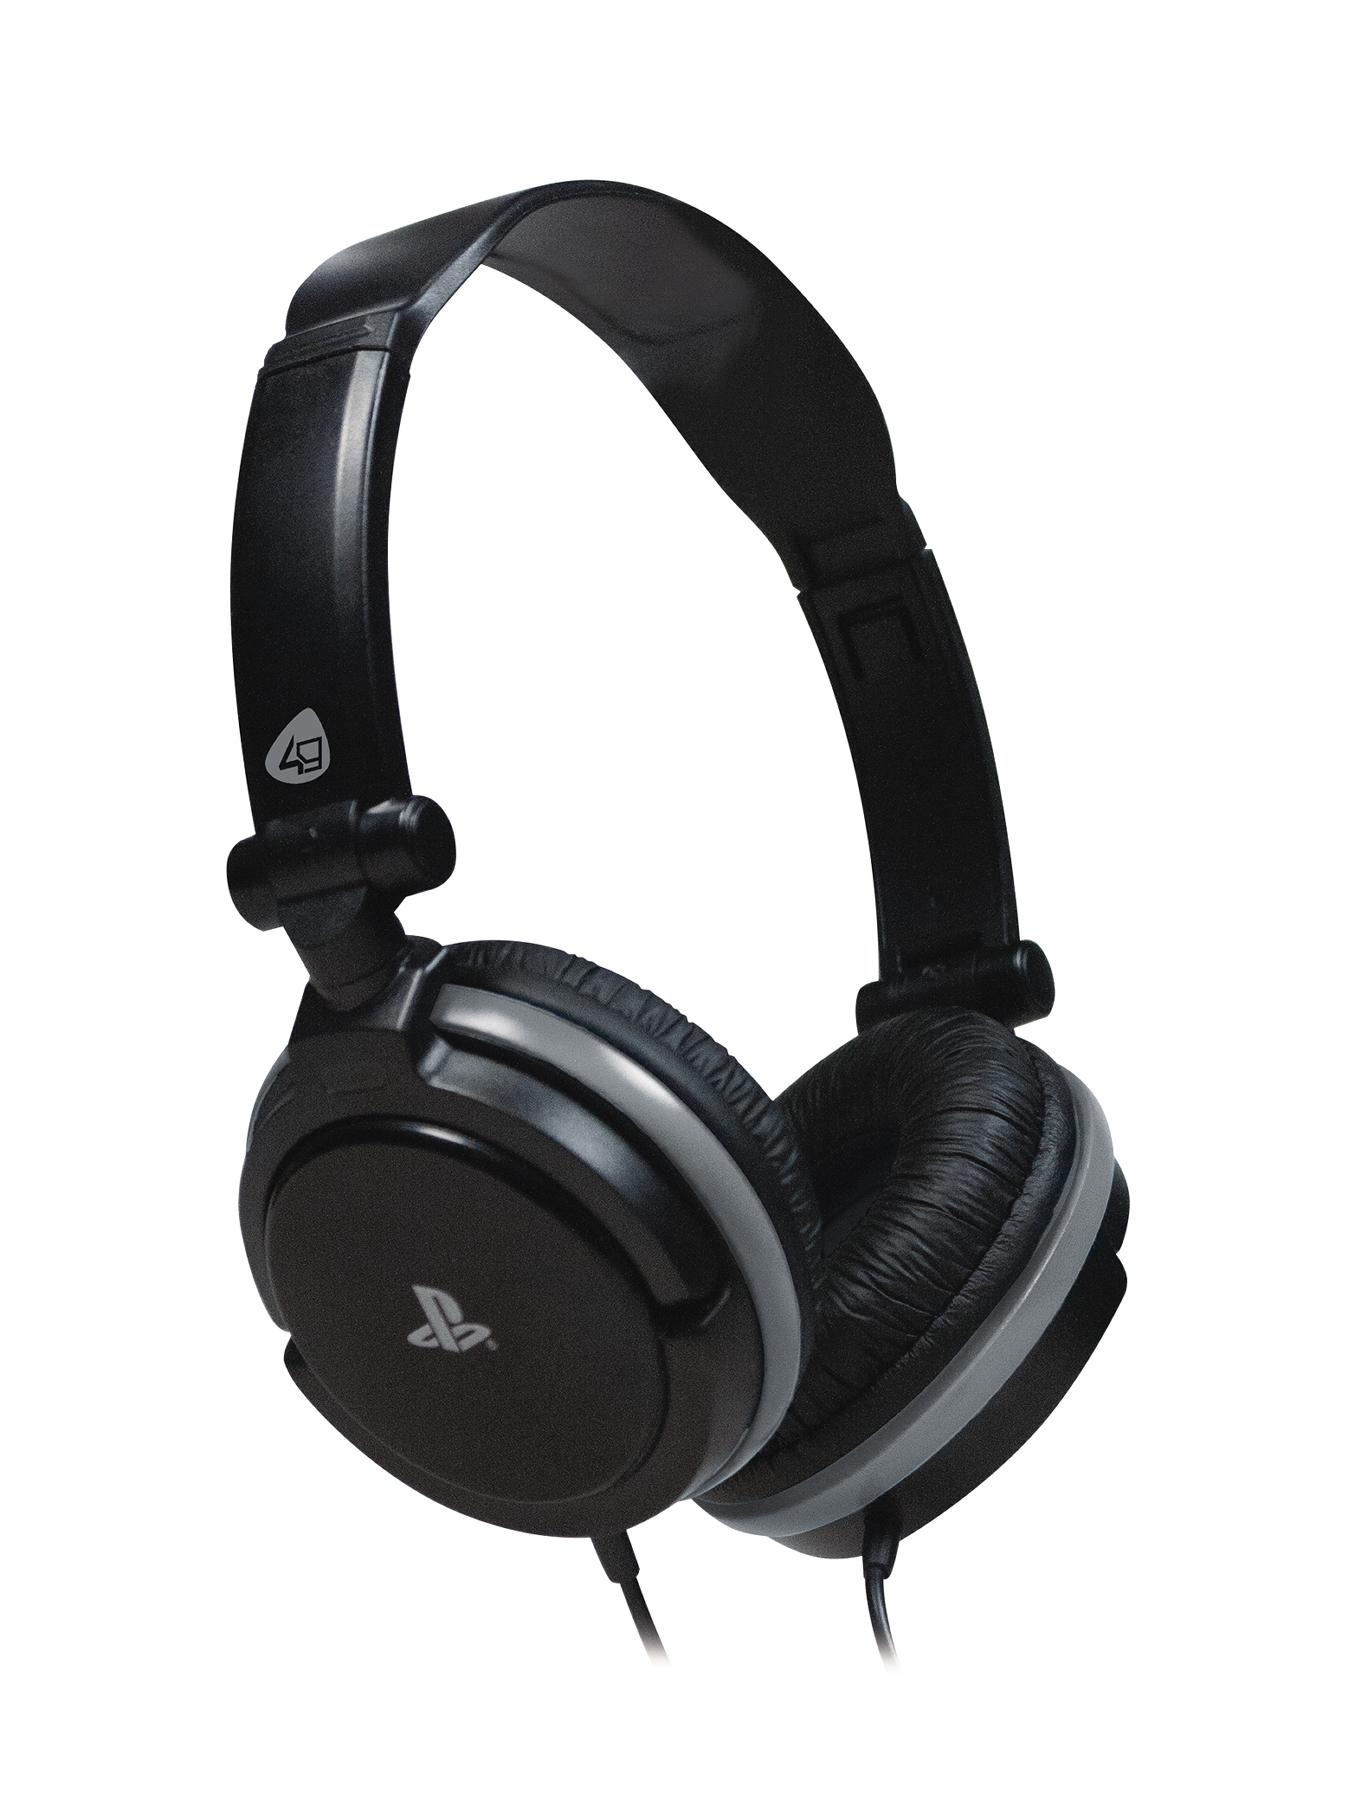 4Gamers Officially Licensed Stereo Gaming Headset for PS4 & PS Vita